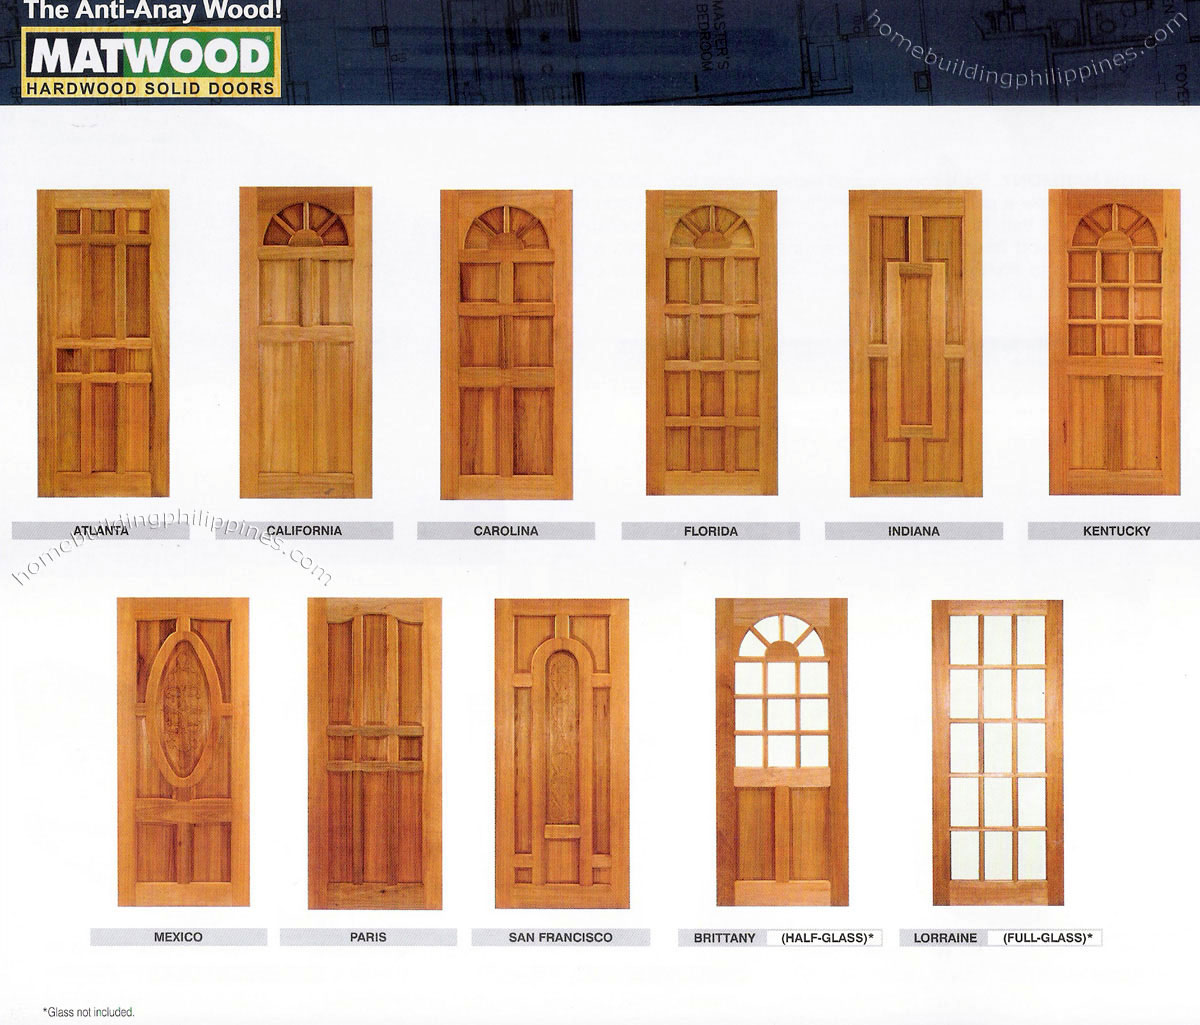 Solid hardwood doors wood door design philippines for Window door design